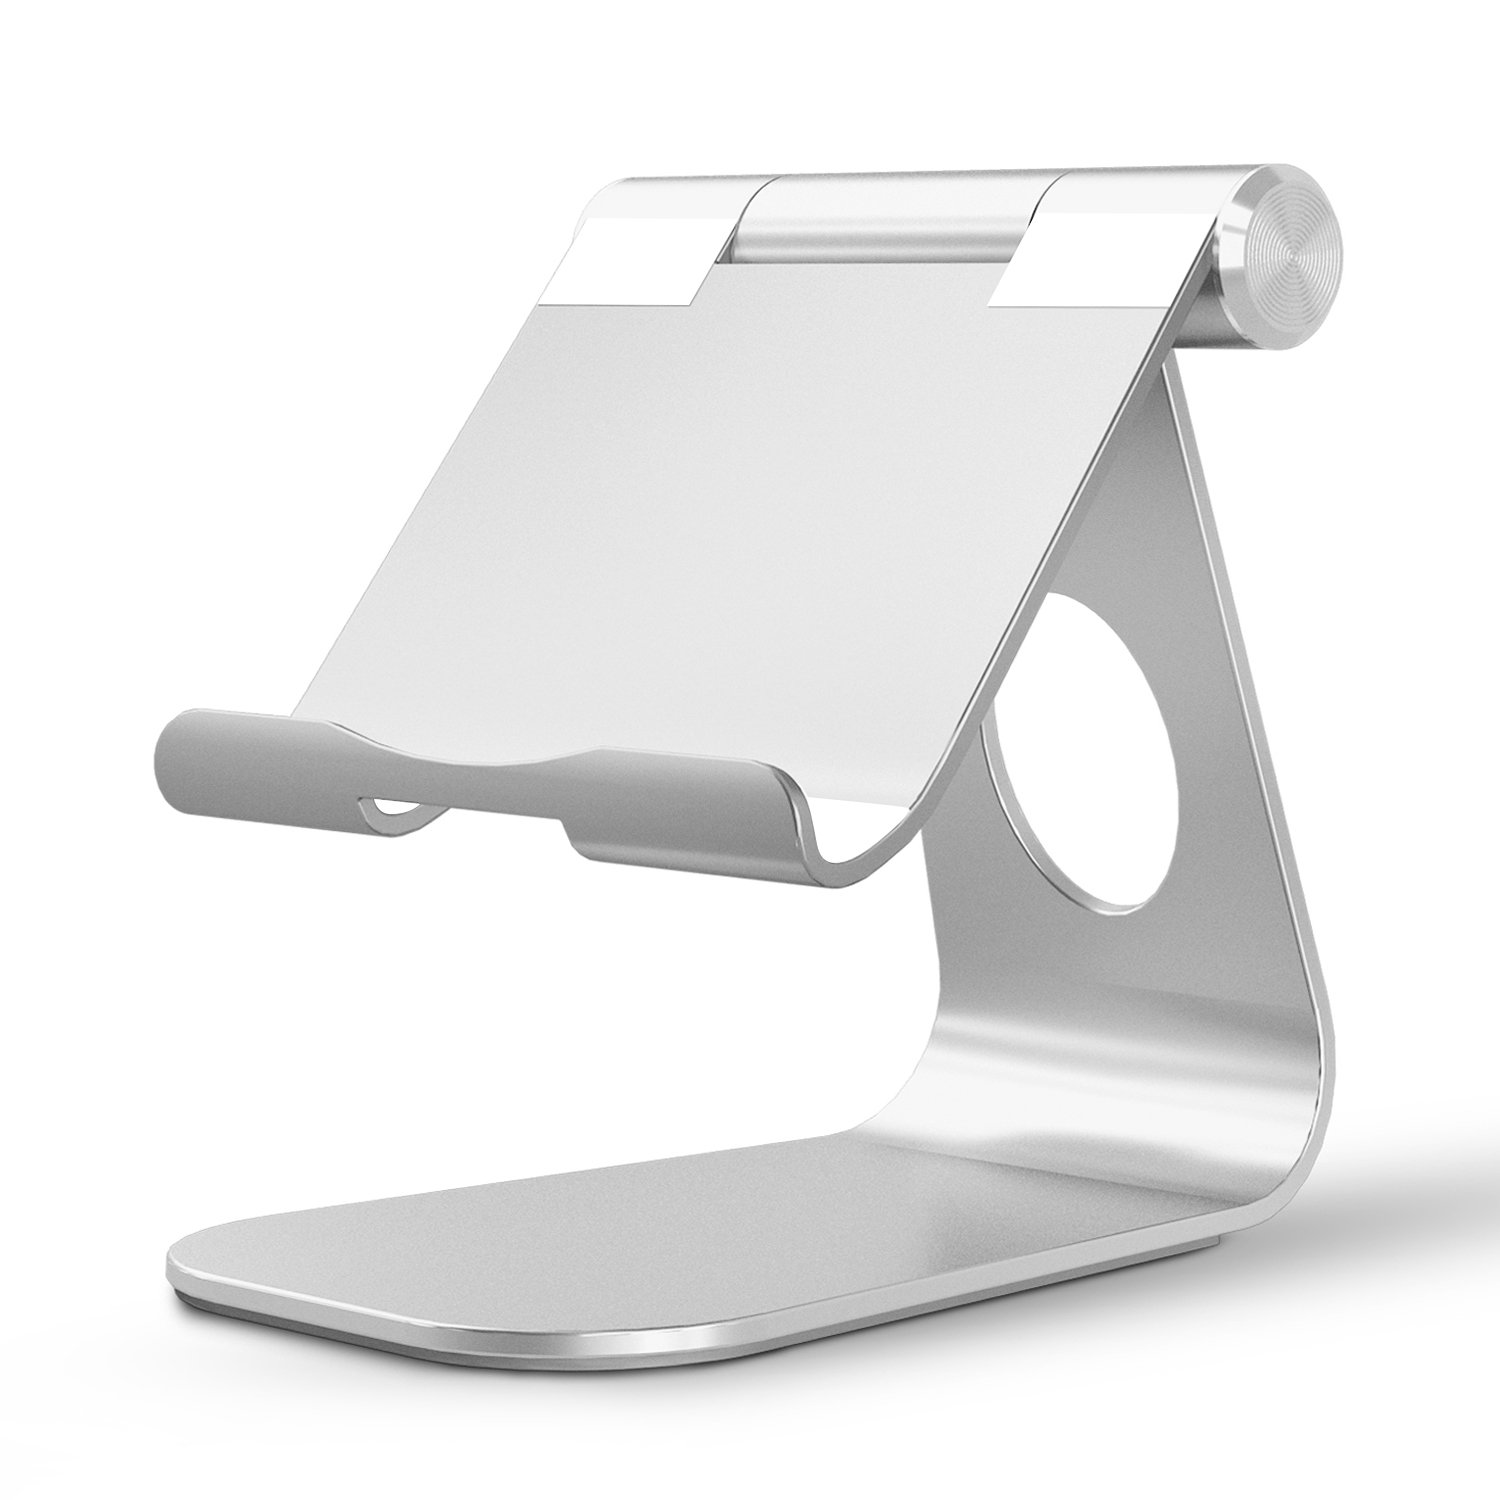 OMOTON Adjustable Tablet Stand Compatible with iPad, Tablets (Up to 12.9 inch) and all Cell Phones, Stable Sticky Base, Silver by OMOTON